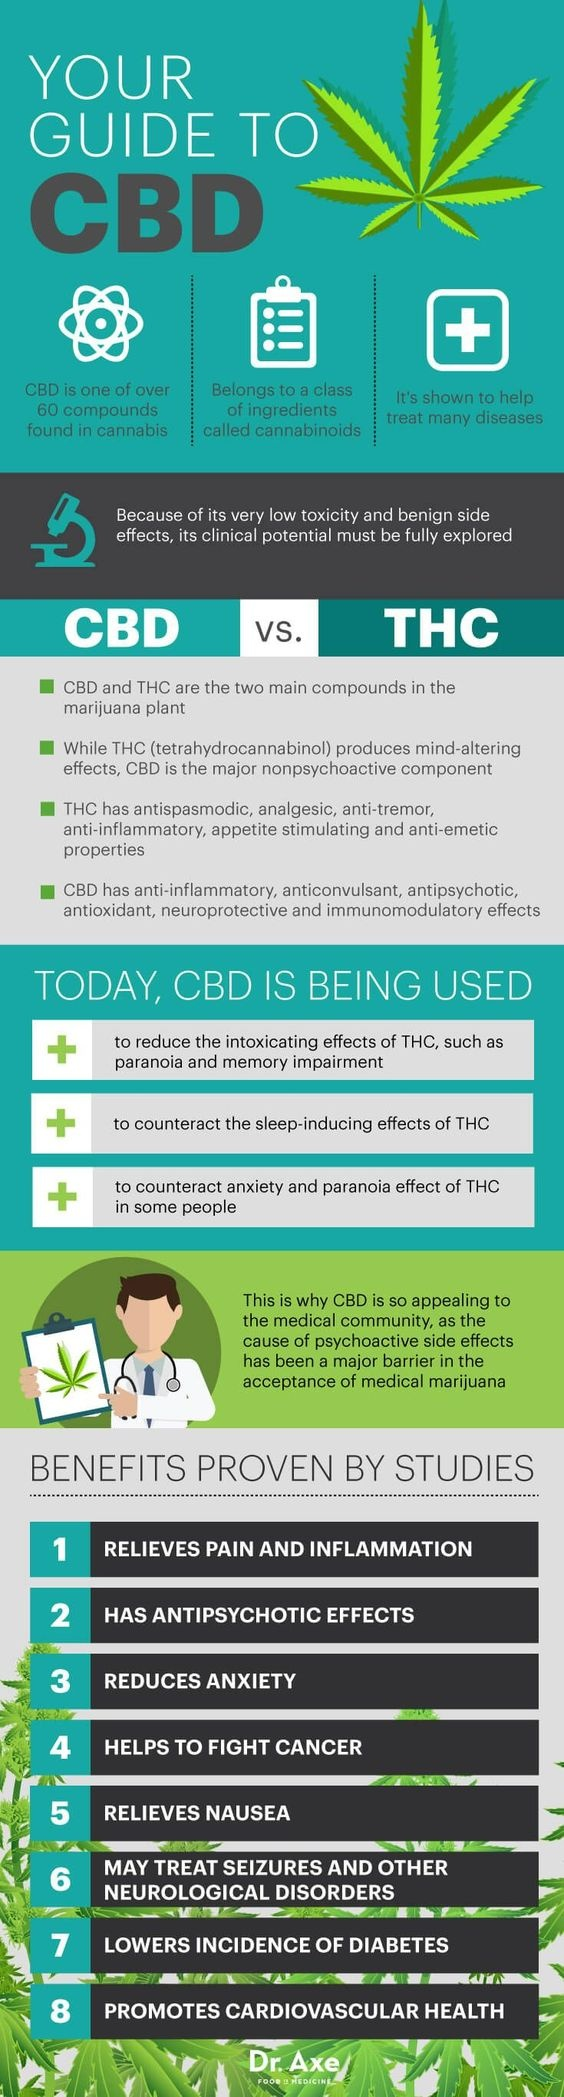 What are the negative side effects of CBD oil? - Quora